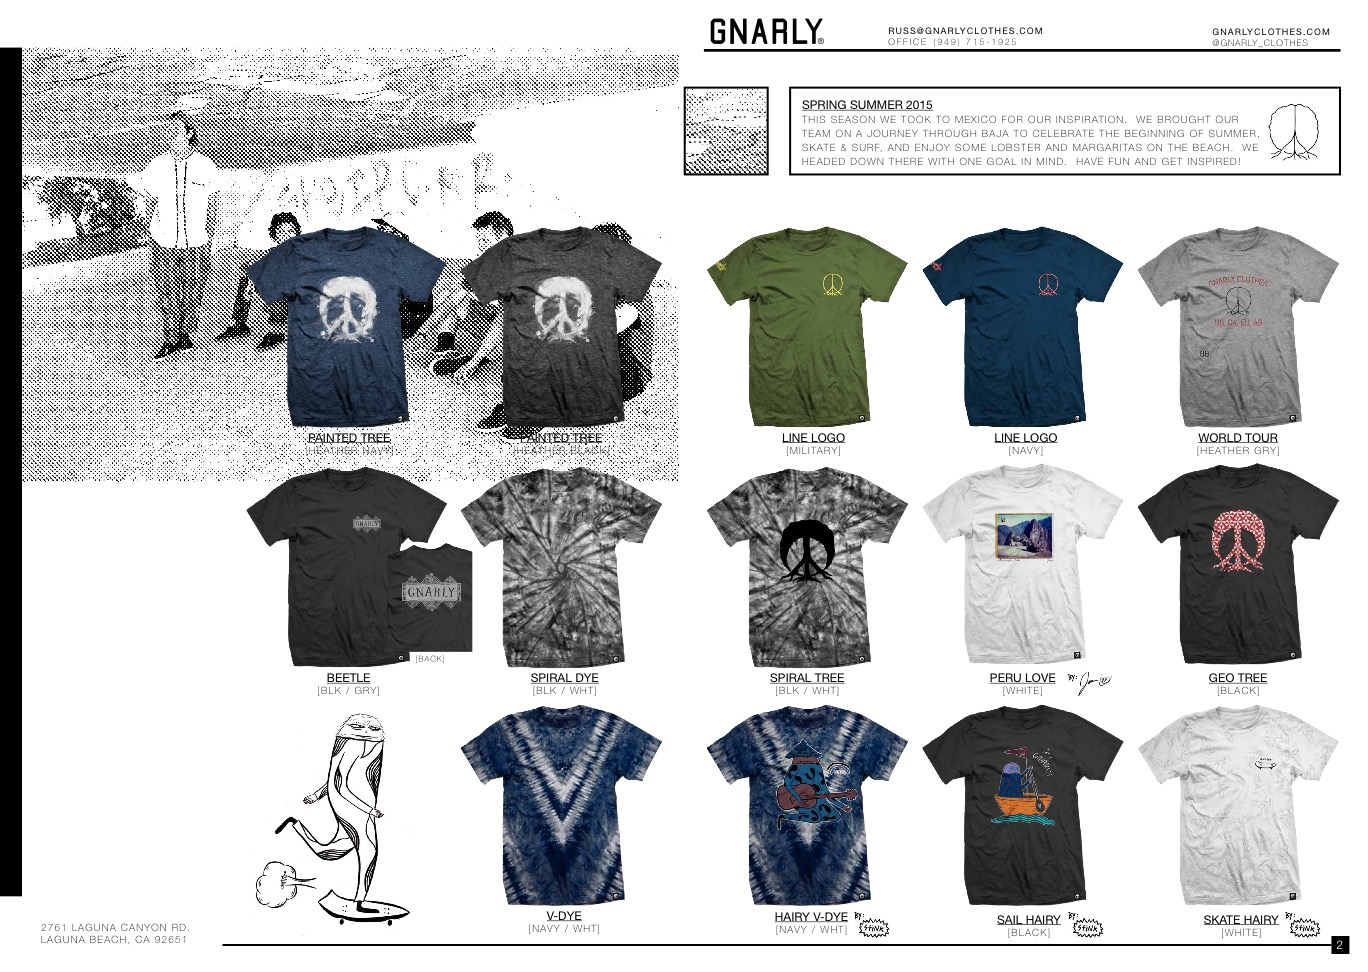 Gnarly_SS15-Catalog_Final 2